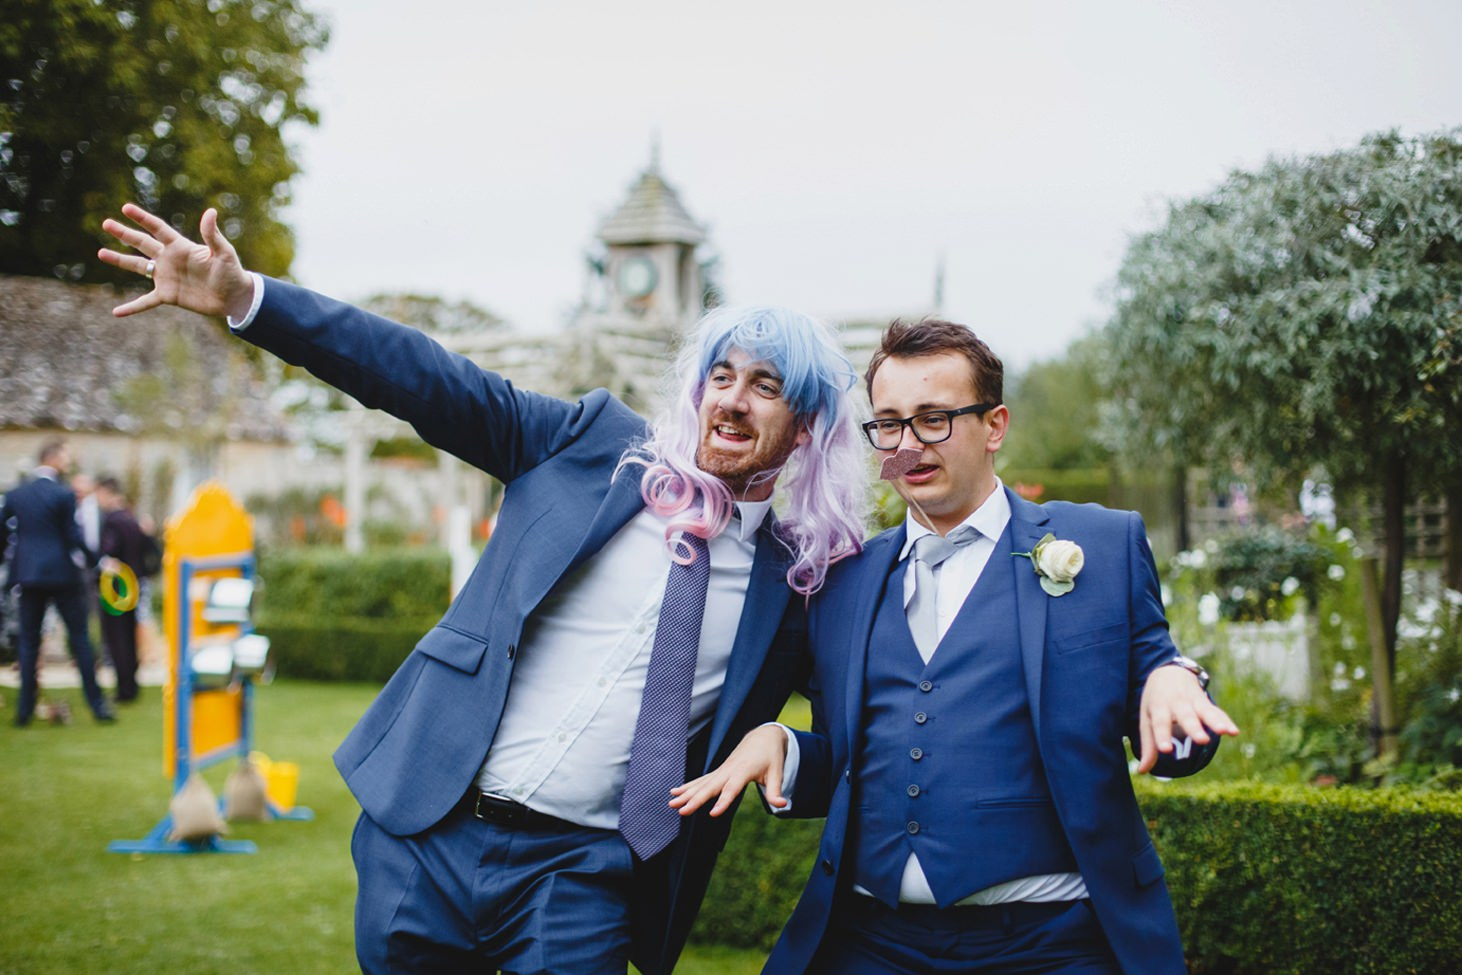 oxfordshire wedding photography groomsmen in wigs